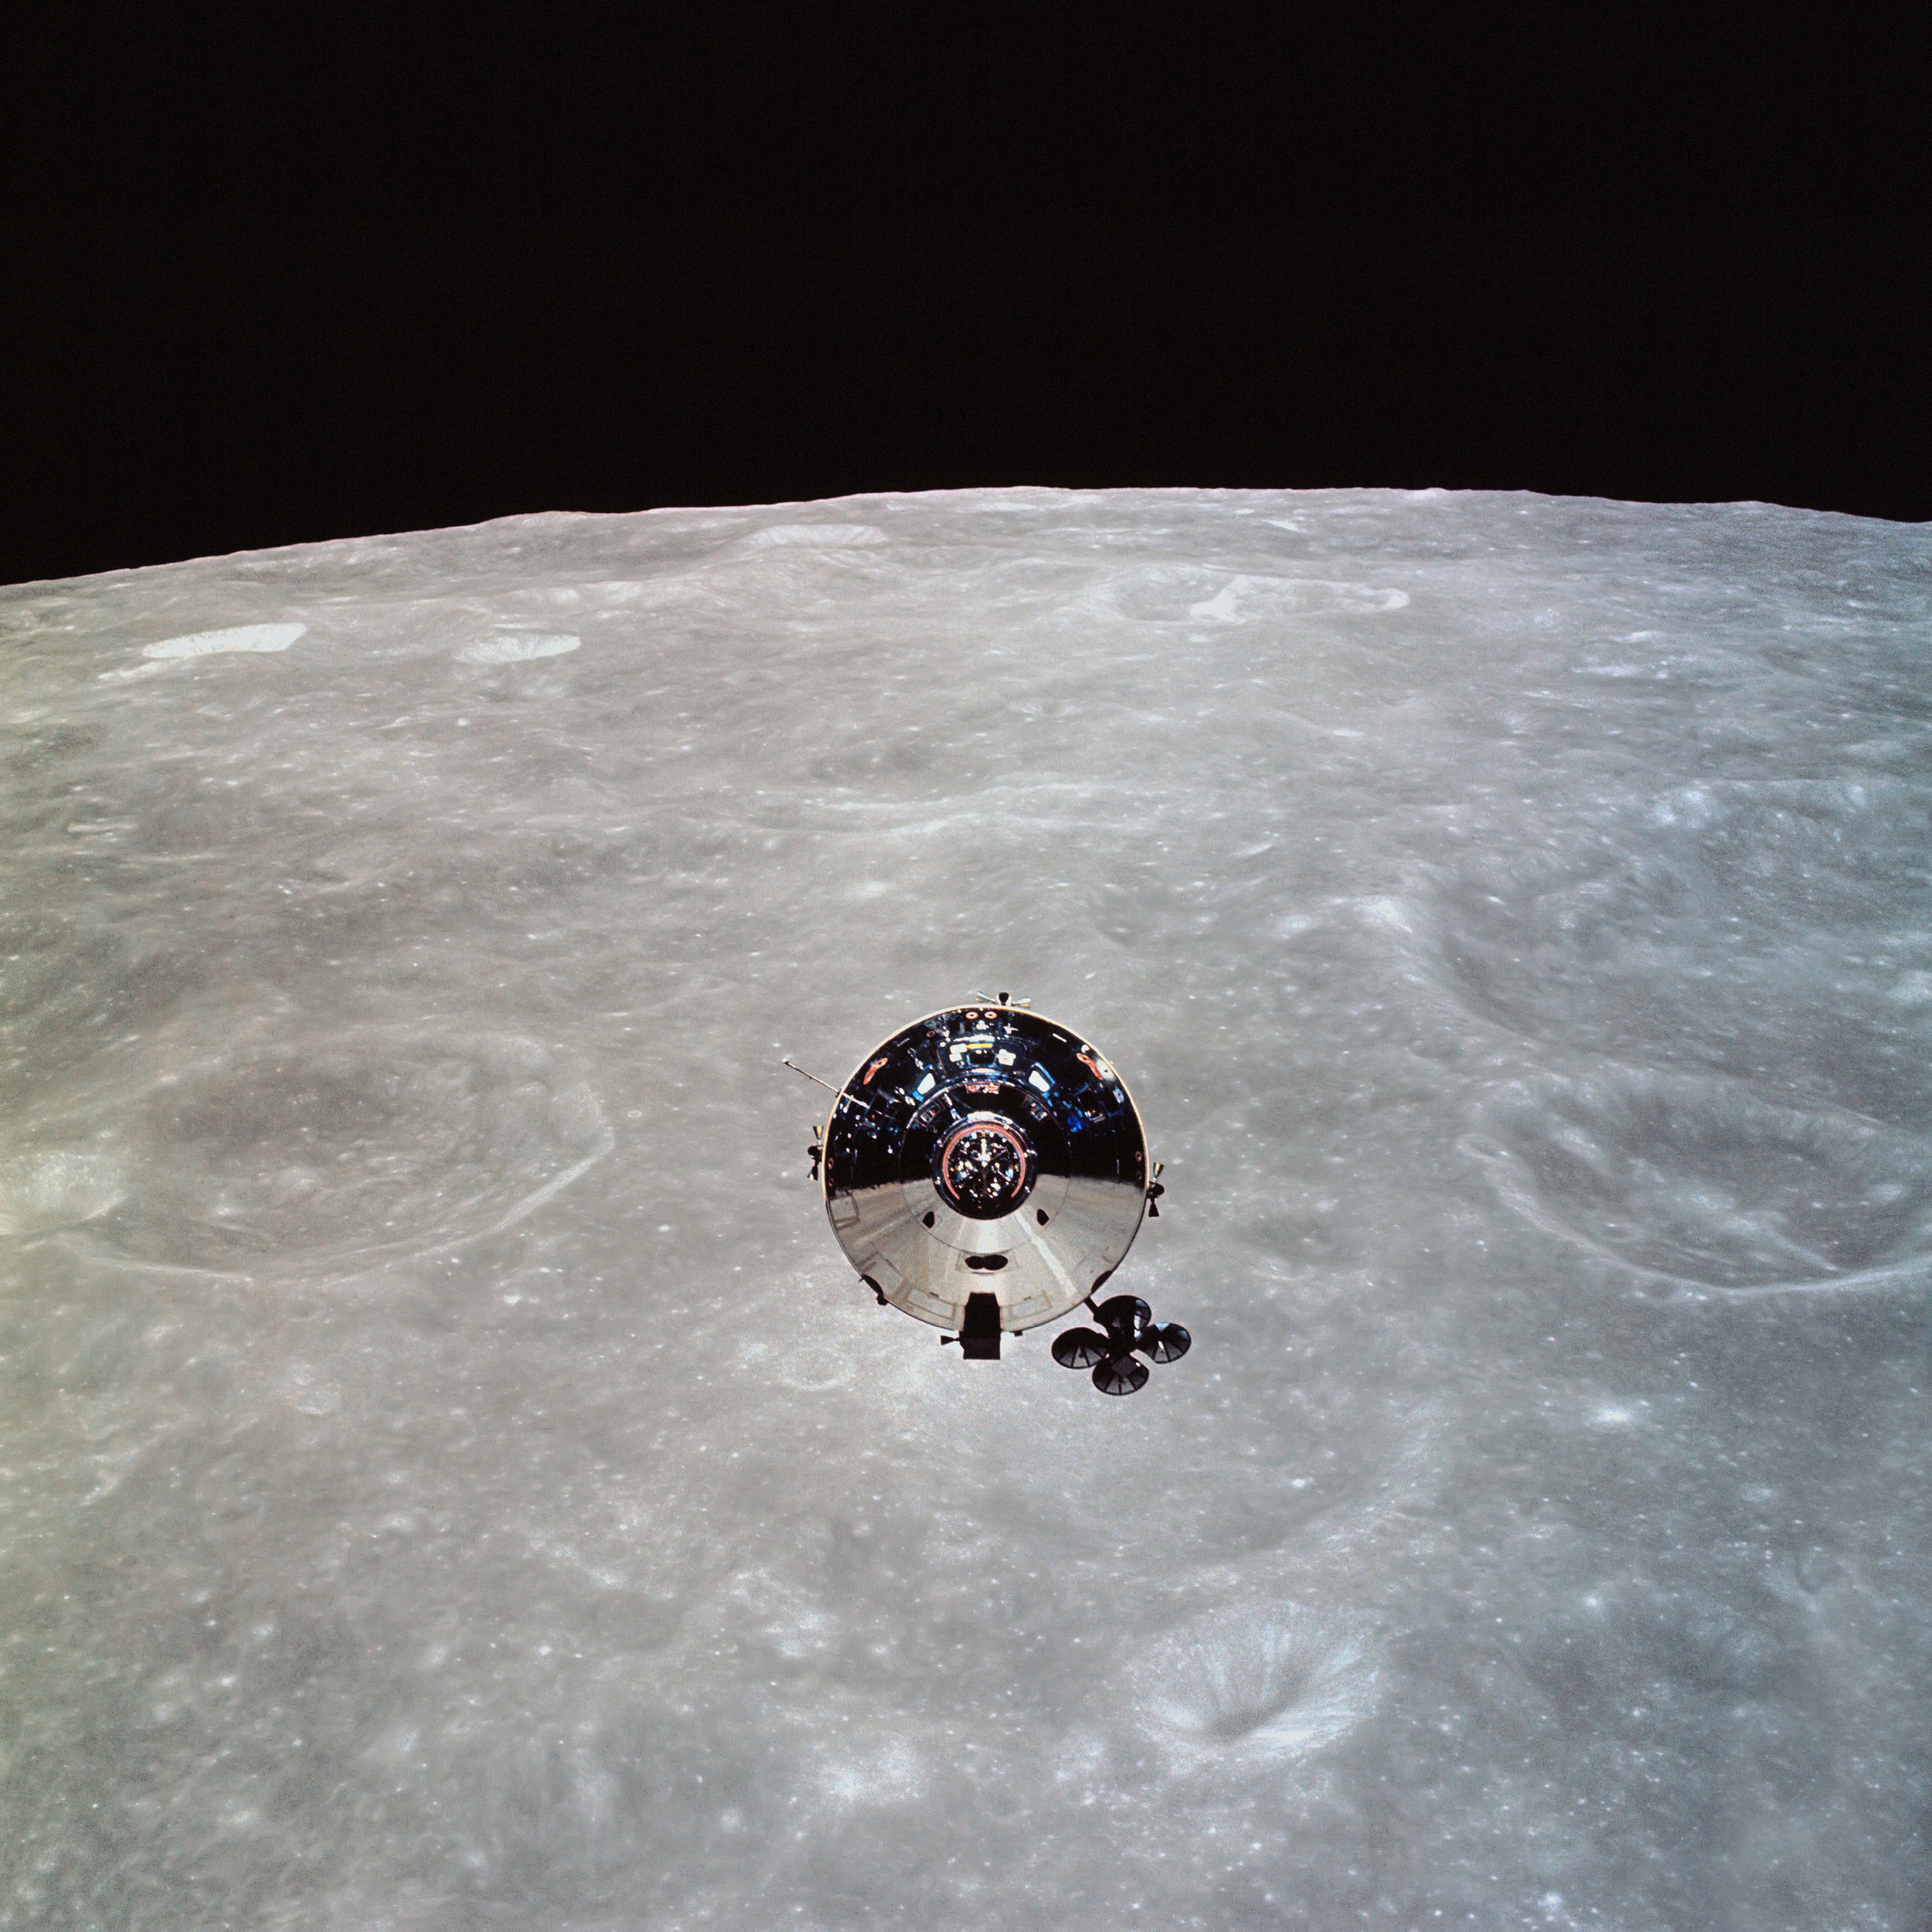 Apollo 10 Command Module Charlie Brown in orbit around the Moon, May 1969.